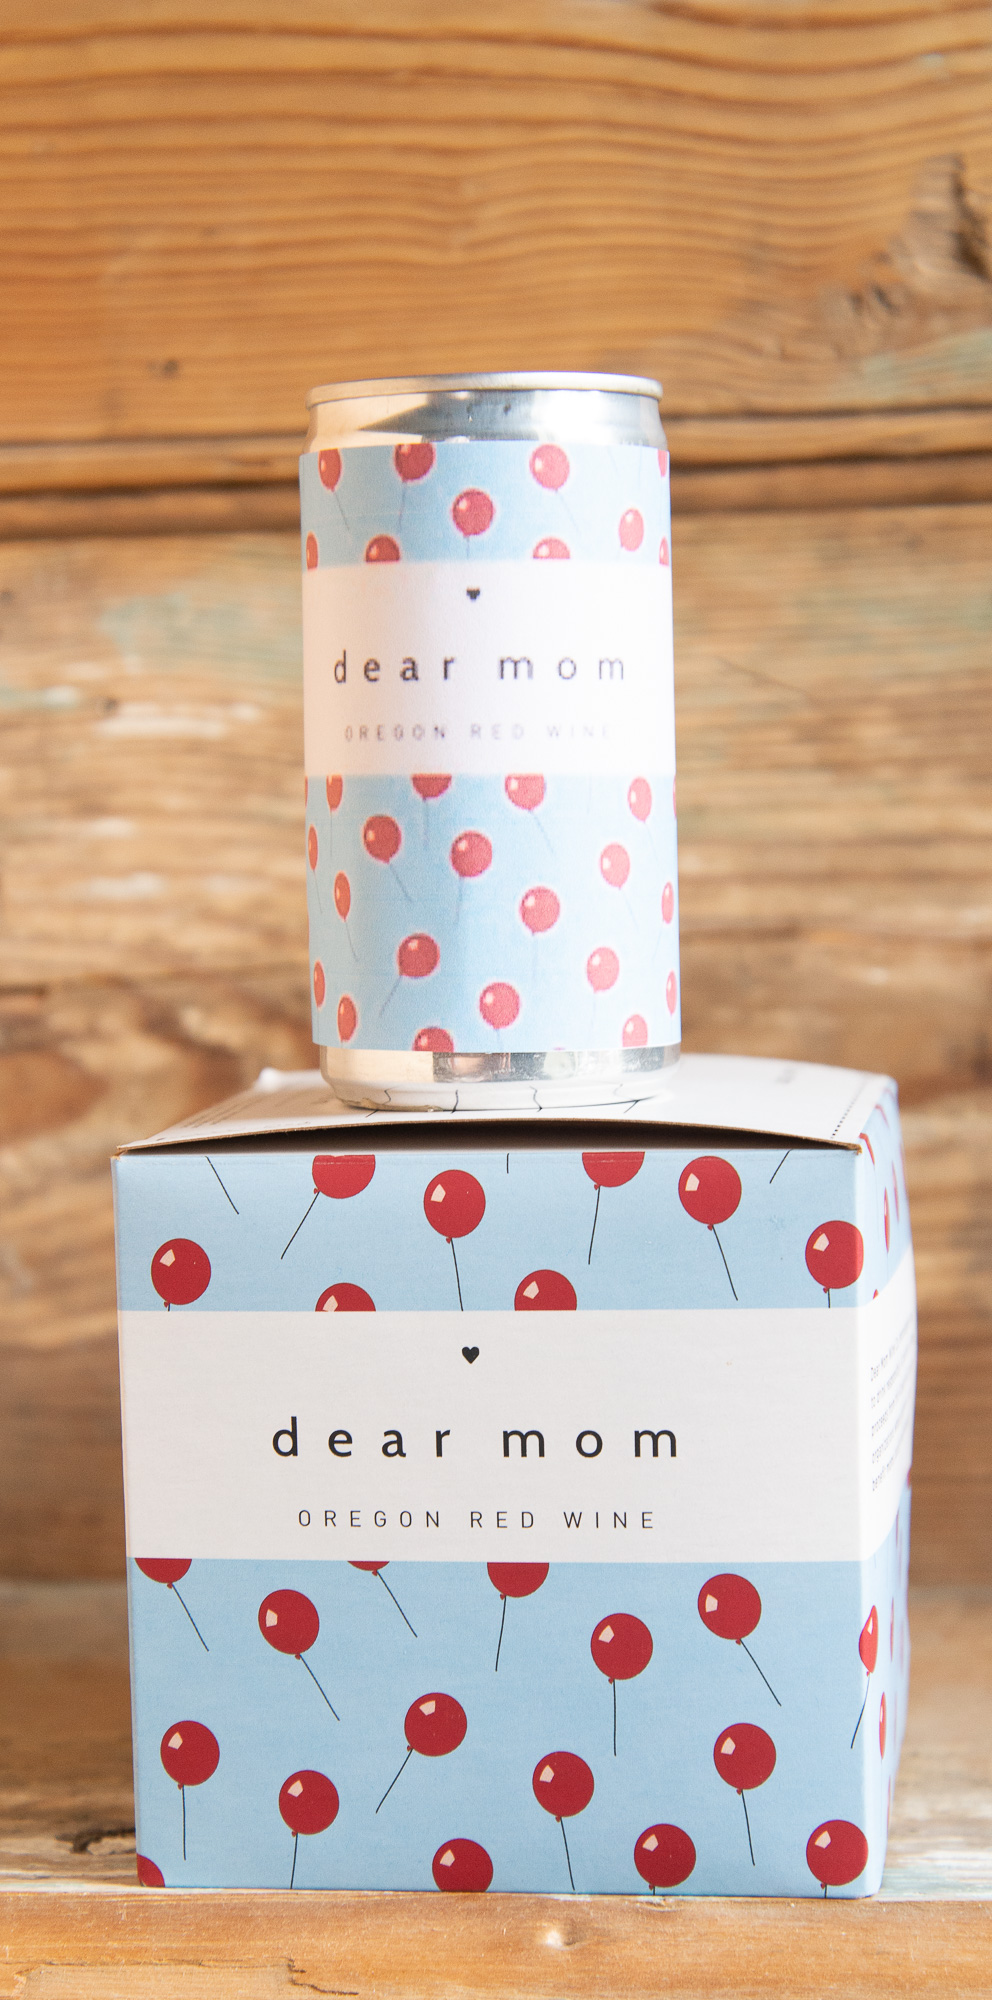 Dear Mom Canned Red Wine - Origin: OregonRetail, 4-pack: $16.95 | Sale: $15.25Retail, Single: $4.95 | Sale: $4.45This Côte-Rôtie style wine is the perfect red for drinking outside. BBQs, picnics, kayaking, hiking, biking, you name it! This canned wine needs to be there. It will surprise you with a savory, almost smoky nose and nice dark fruits on the palate that come through with a bit of structure. These adorable cans are 187ml servings, which is essentially a standard pour at your local watering hole. A 4-pack of Dear Mom is equal to approximately 1 standard 750ml sized bottle of wine.90% Syrah | 10% Viognier